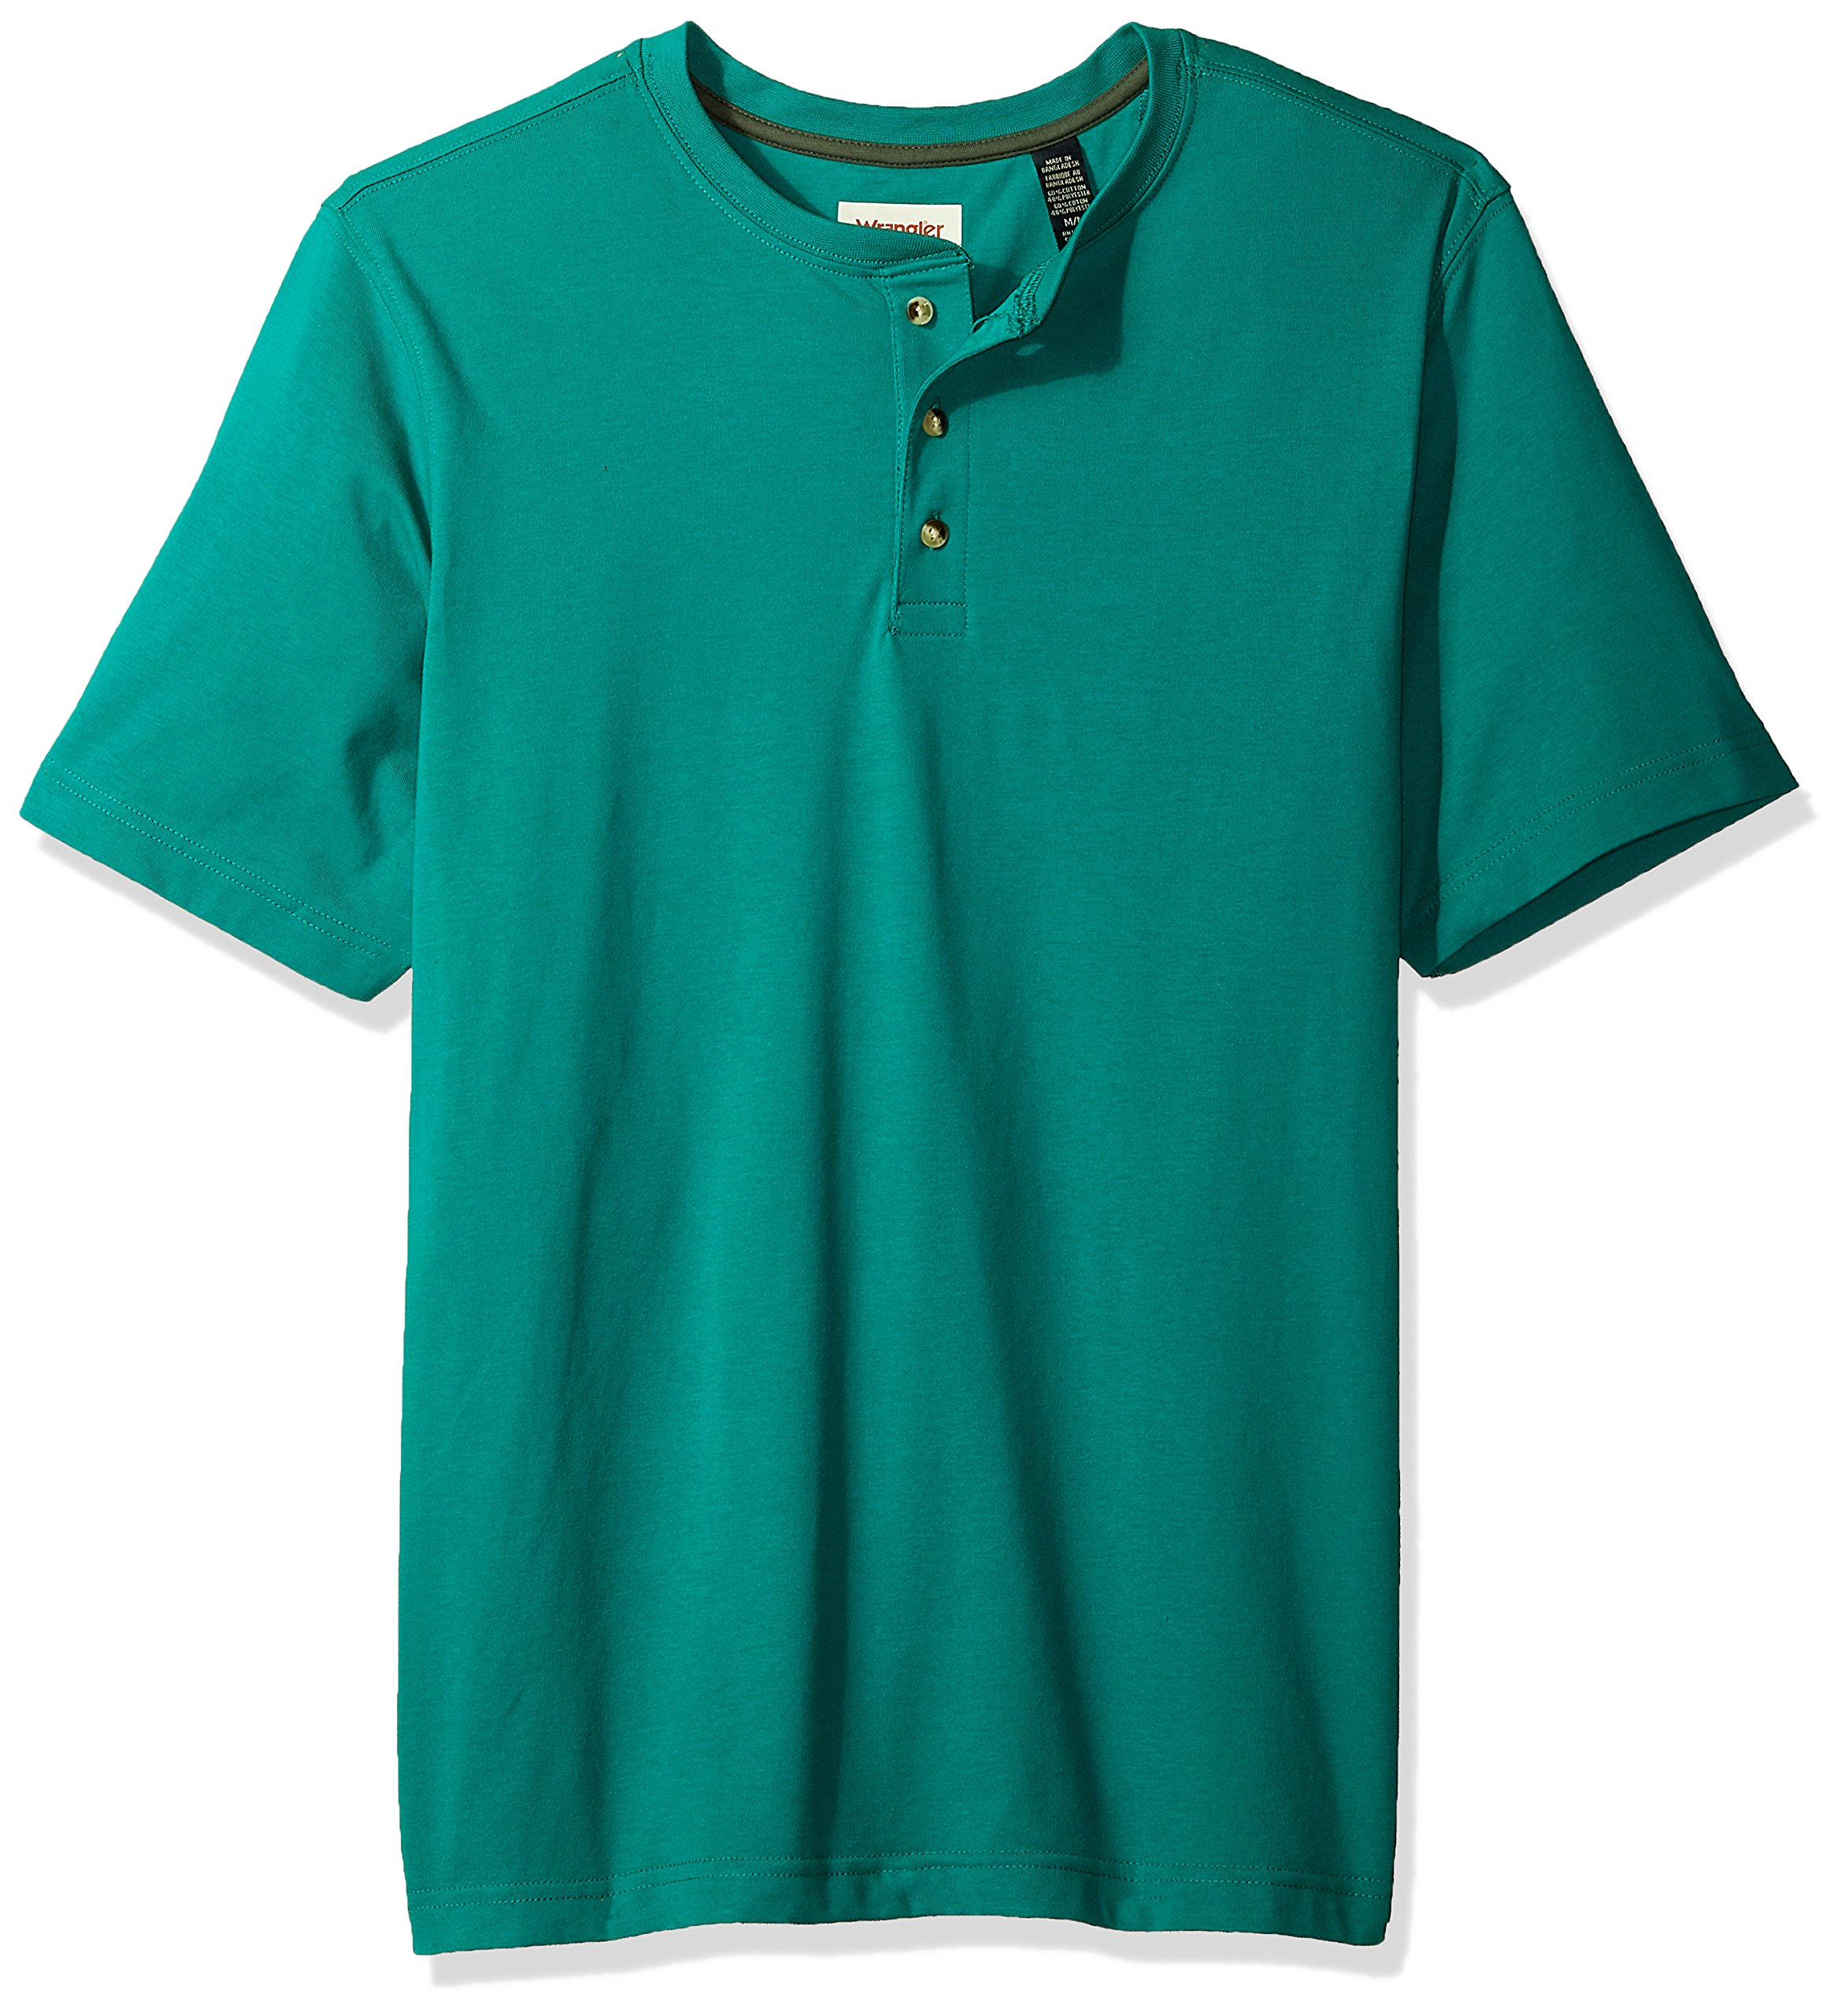 Wrangler Authentics Men's Big & Tall Short Sleeve Henley Tee, Quetzal Green, XL by Wrangler